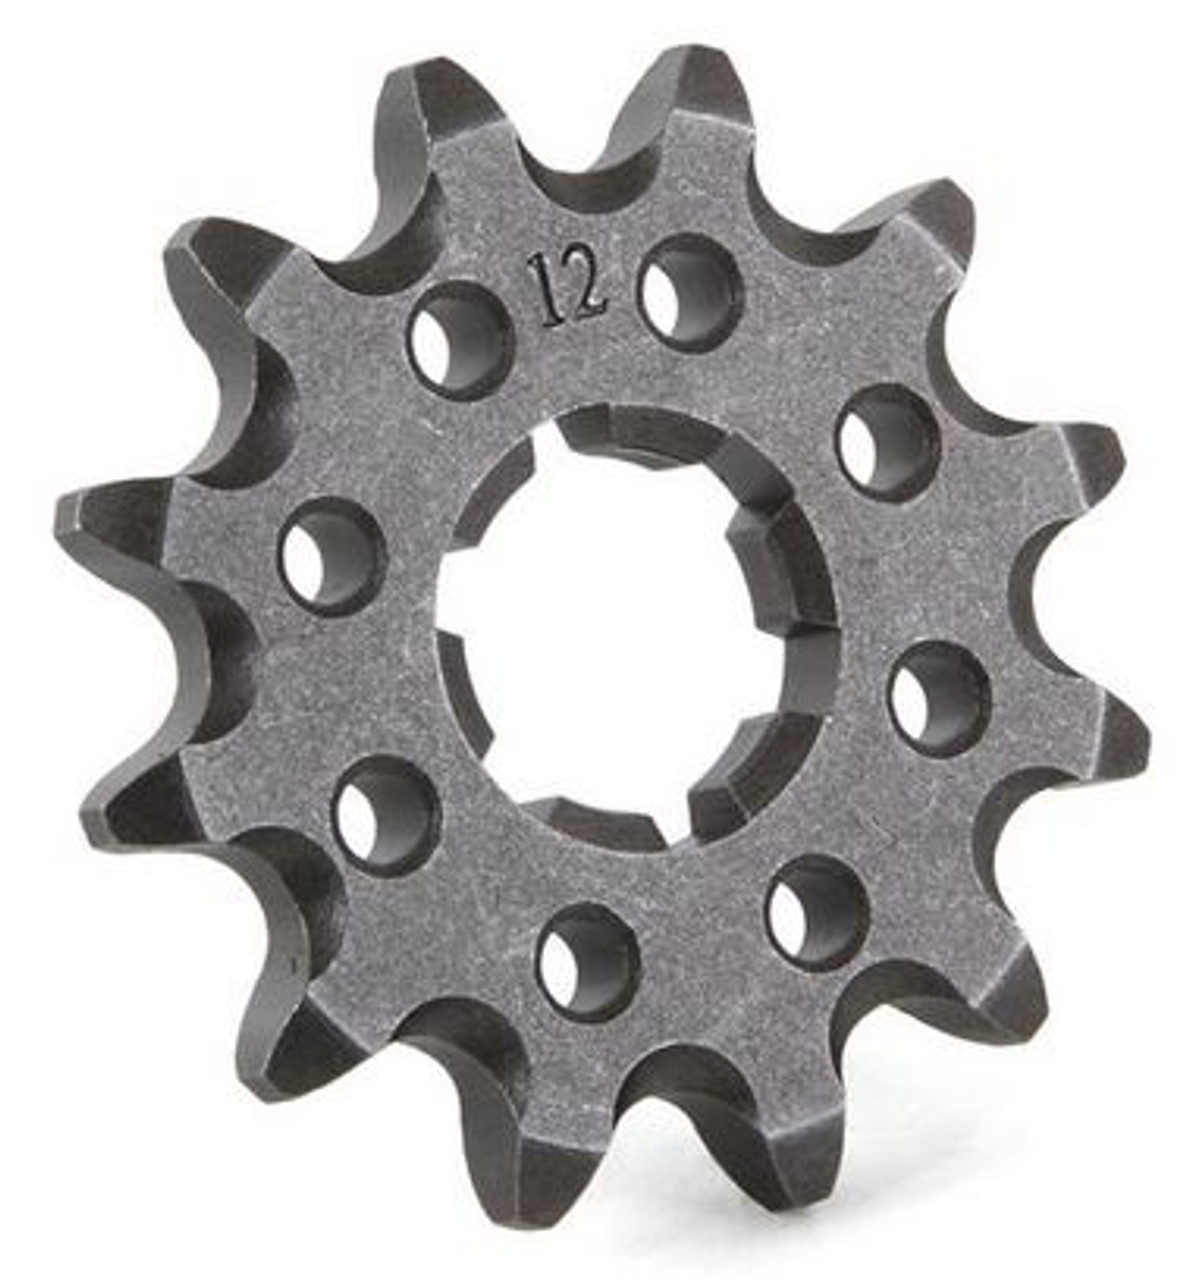 KTM 300 EXC 1995-2018 FRONT SPROCKET 13 14 15 TOOTH STEEL PROX